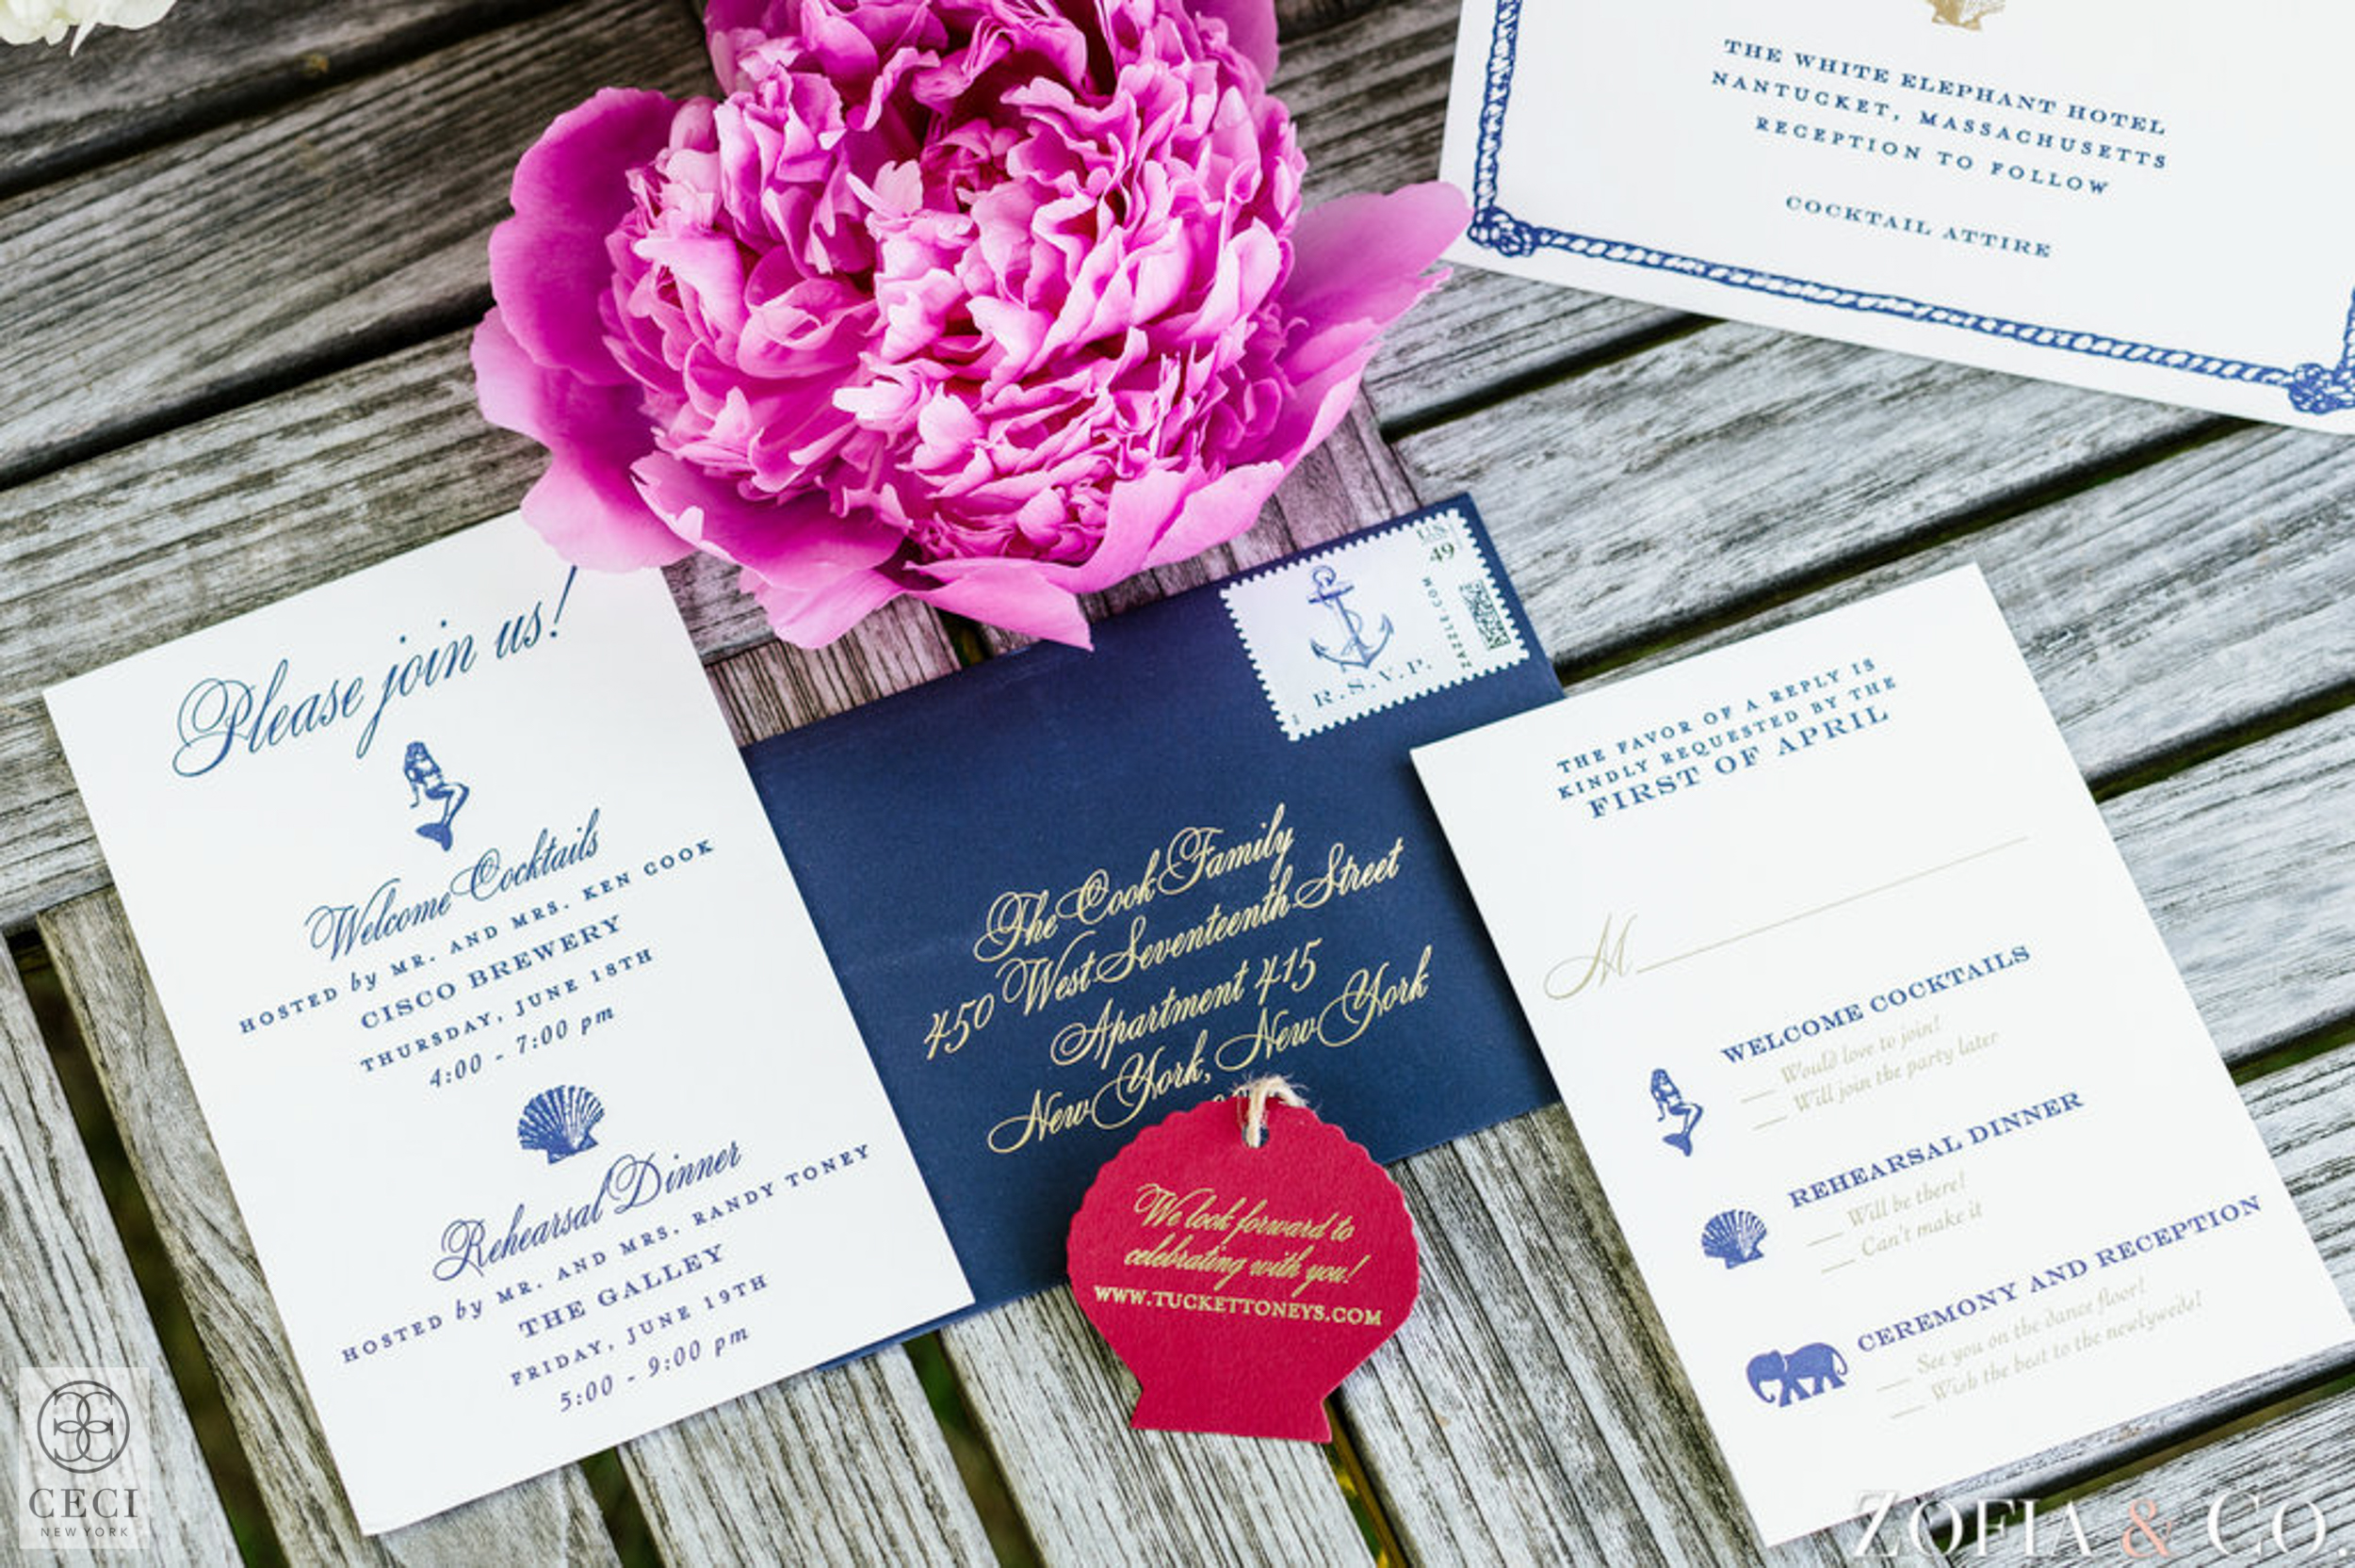 Ceci_New_York_Custom_Luxury_Wedding_LaserCut_Stationery_Personalized_Couture_Foil_Stamping_Black_Chic_-17 copy.jpg